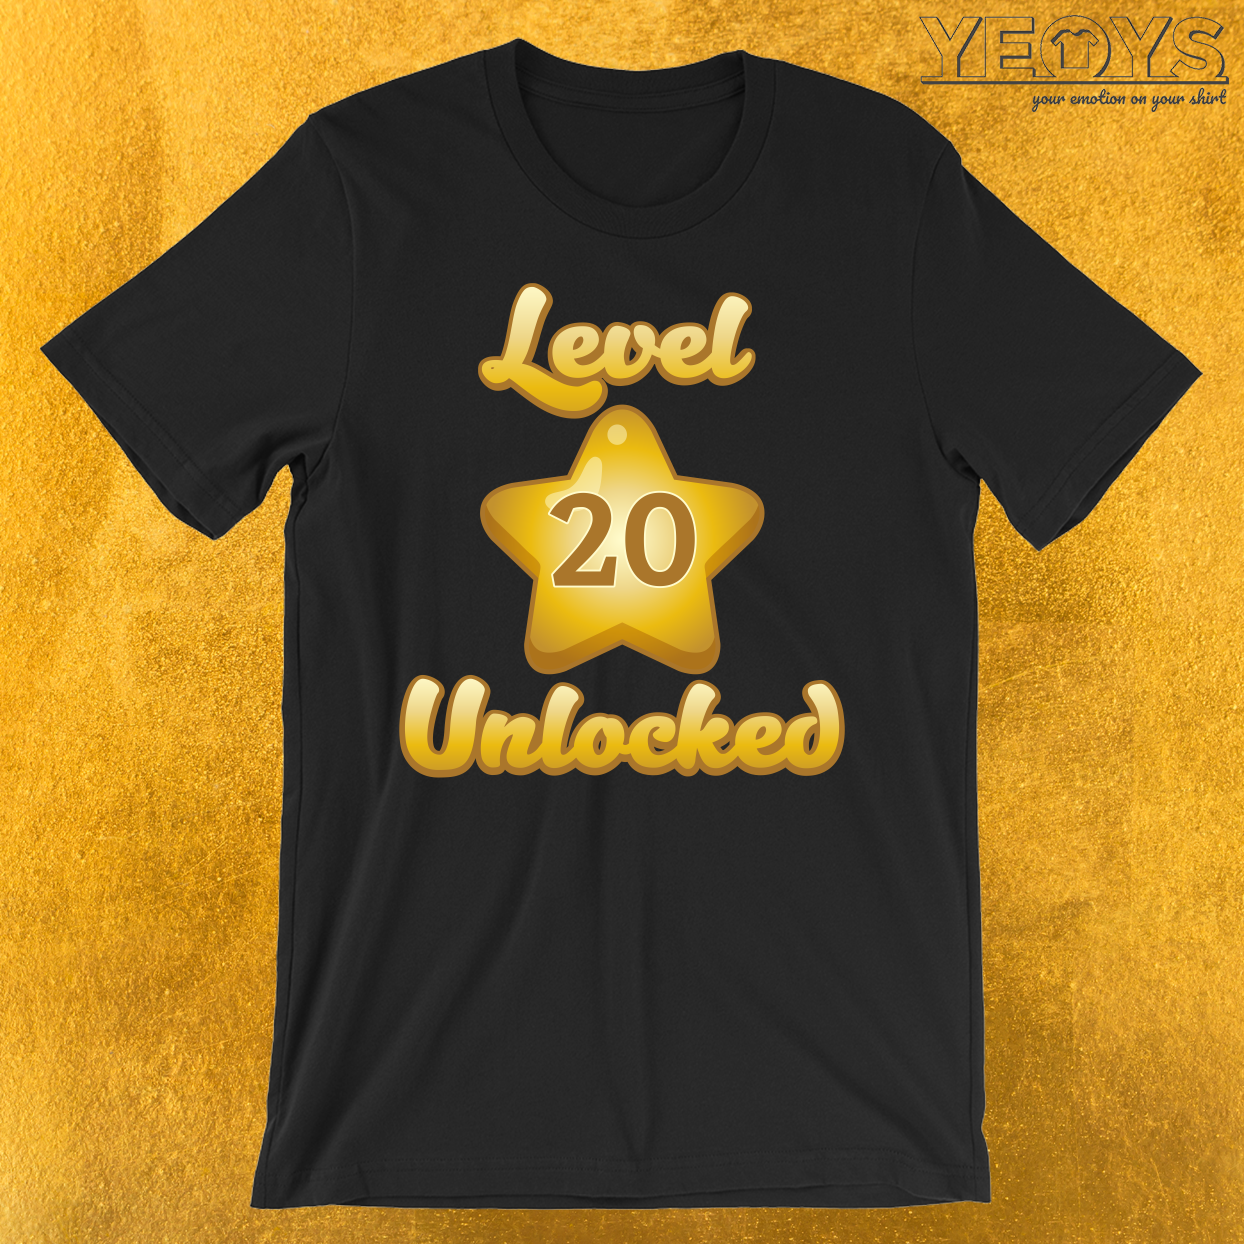 Level 20 Unlocked T-Shirt